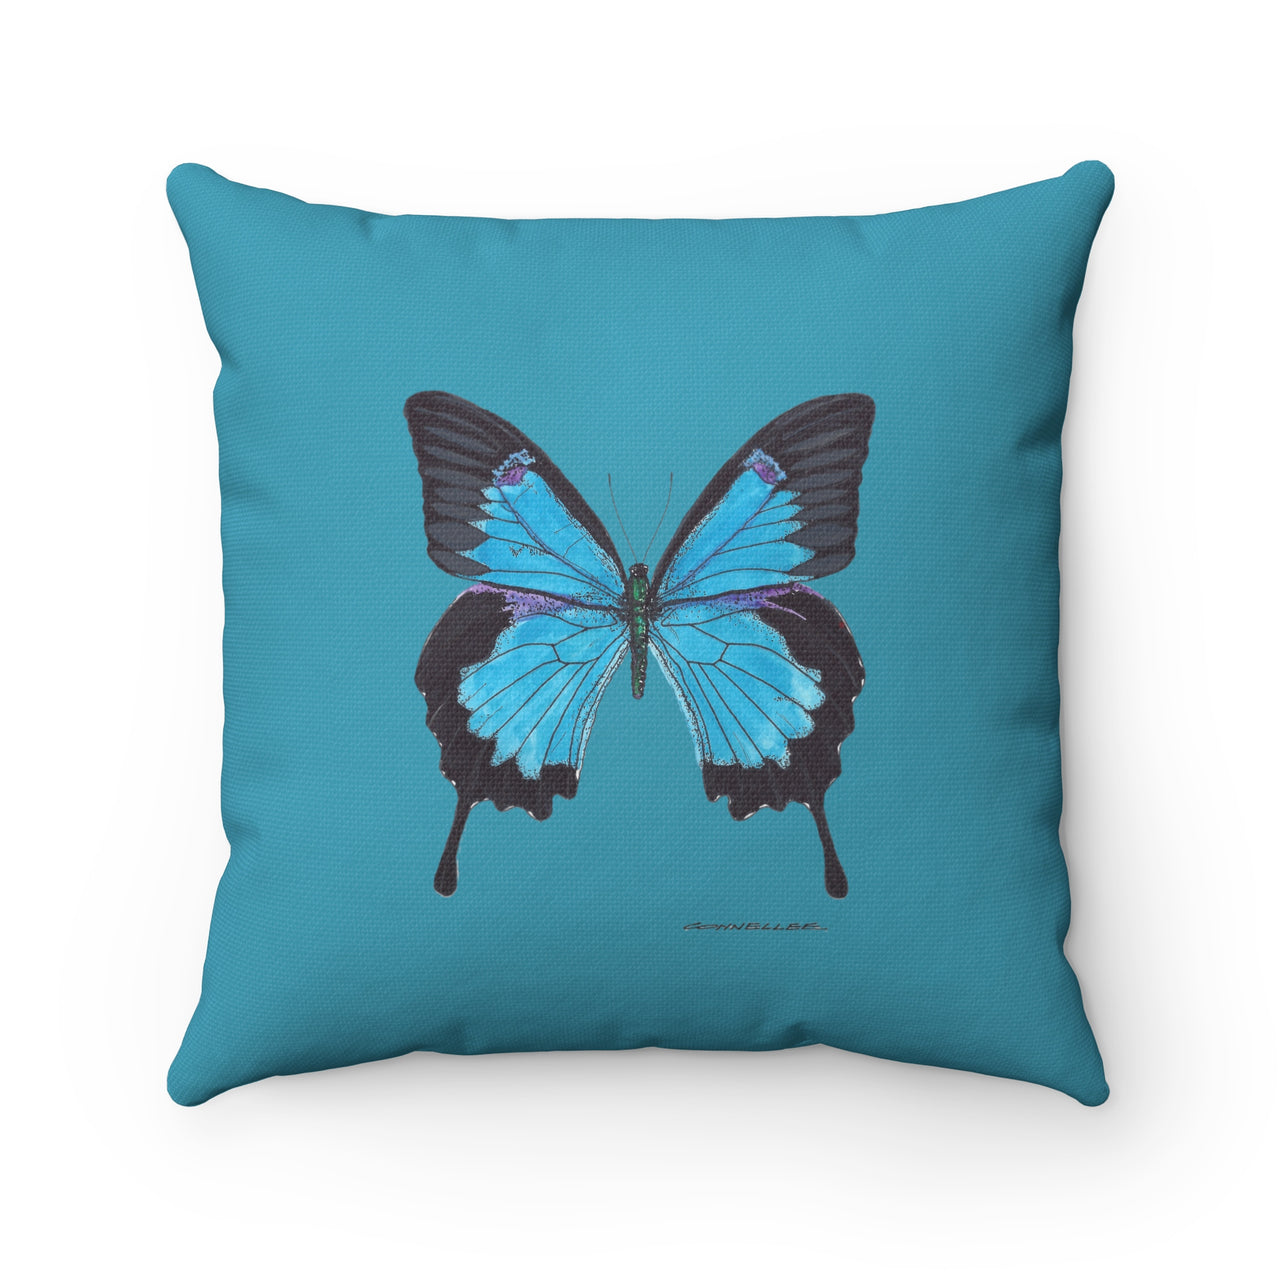 Pillow - Blue Butterfly - Spun Polyester Square - Falling Leaf Card Co.